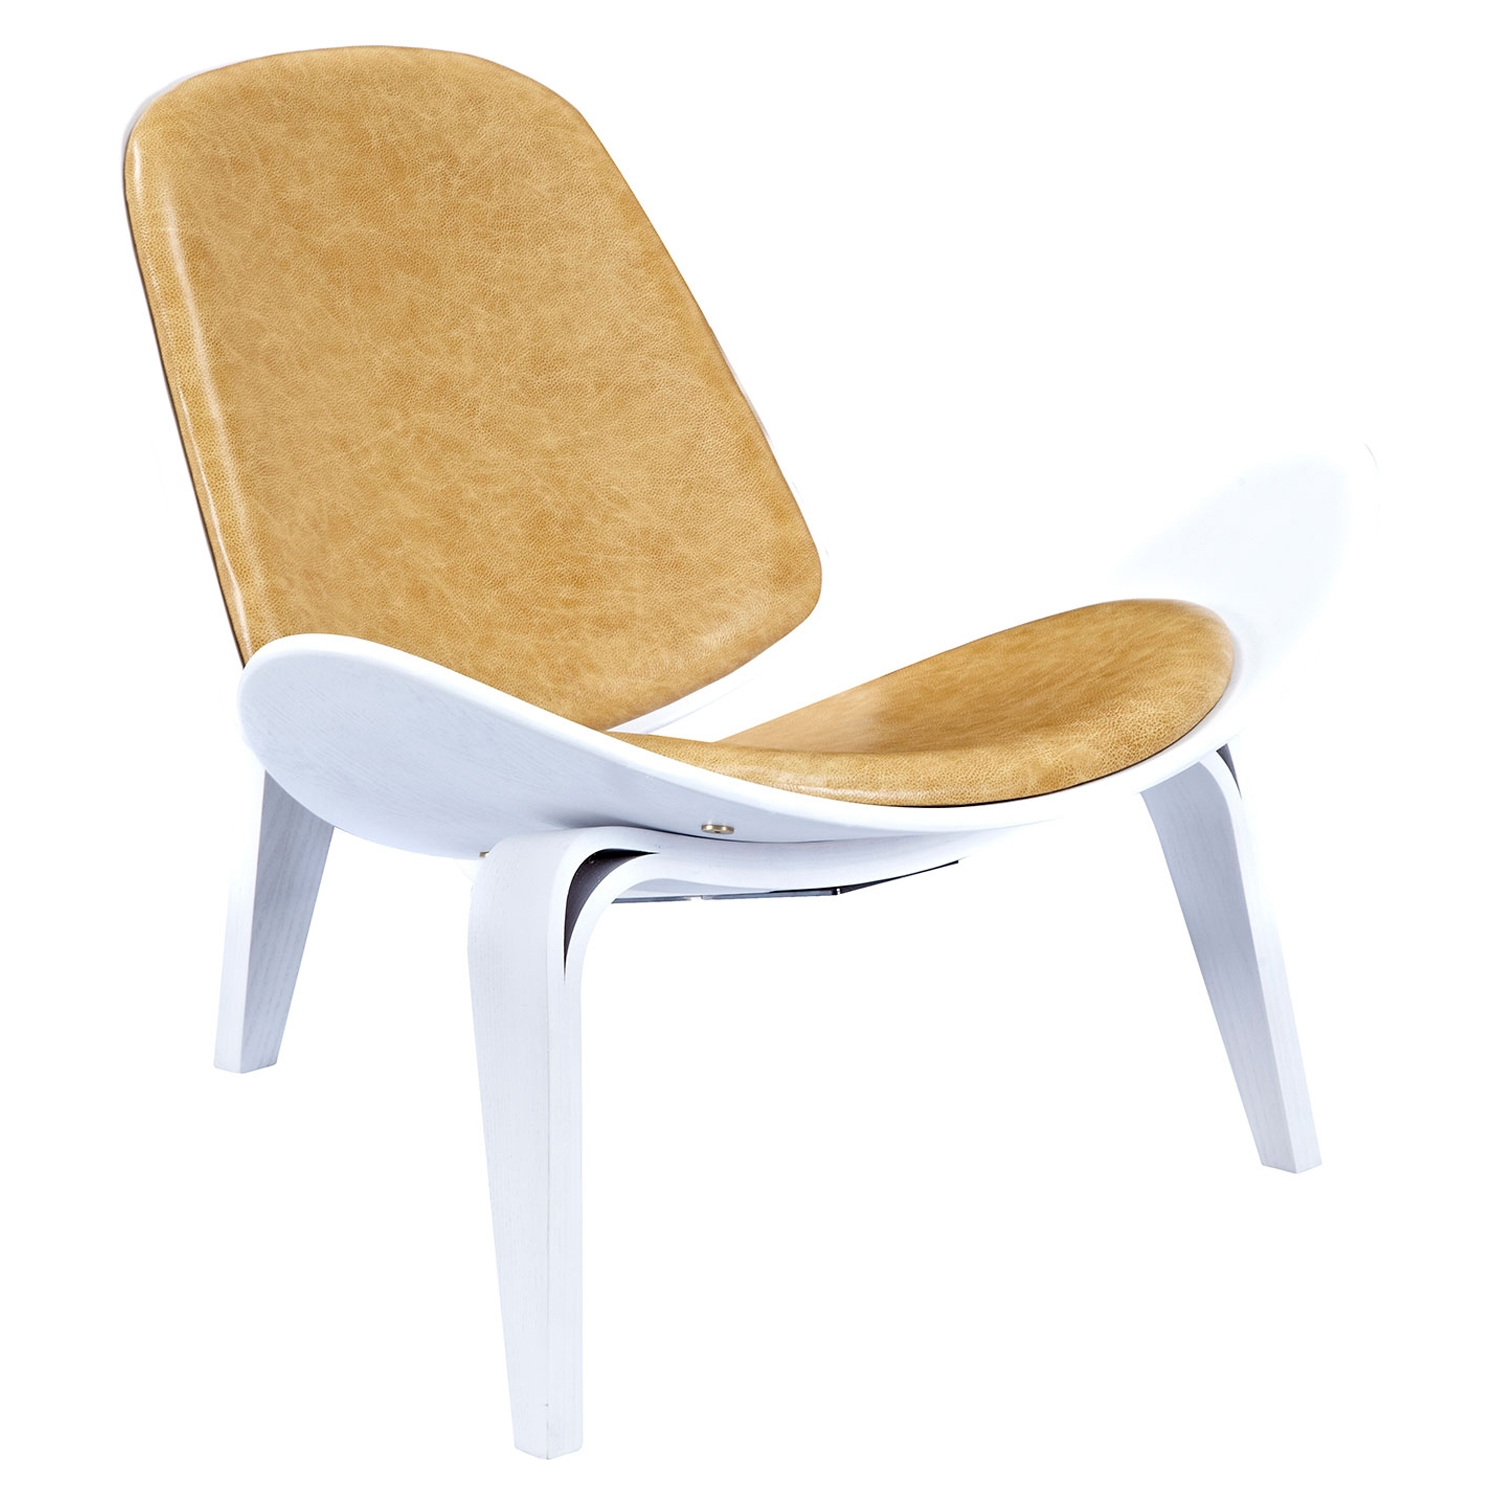 Shell Accent Chair - Aged Maple - NYEK-224443